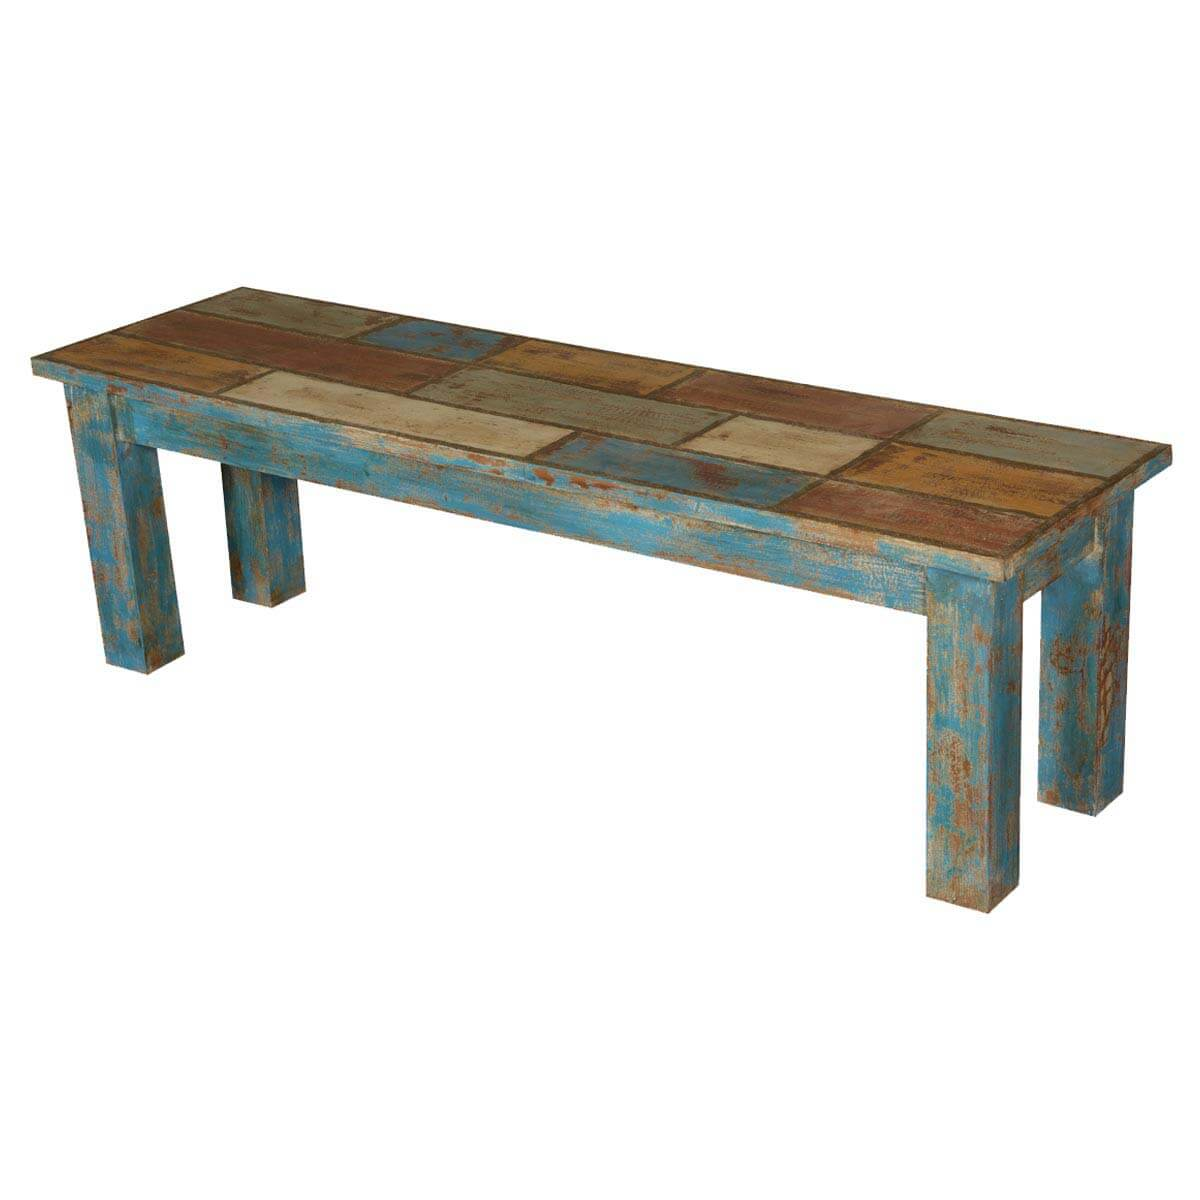 Prime Francis Wooden Patches Distressed Acacia Wood Bench Theyellowbook Wood Chair Design Ideas Theyellowbookinfo